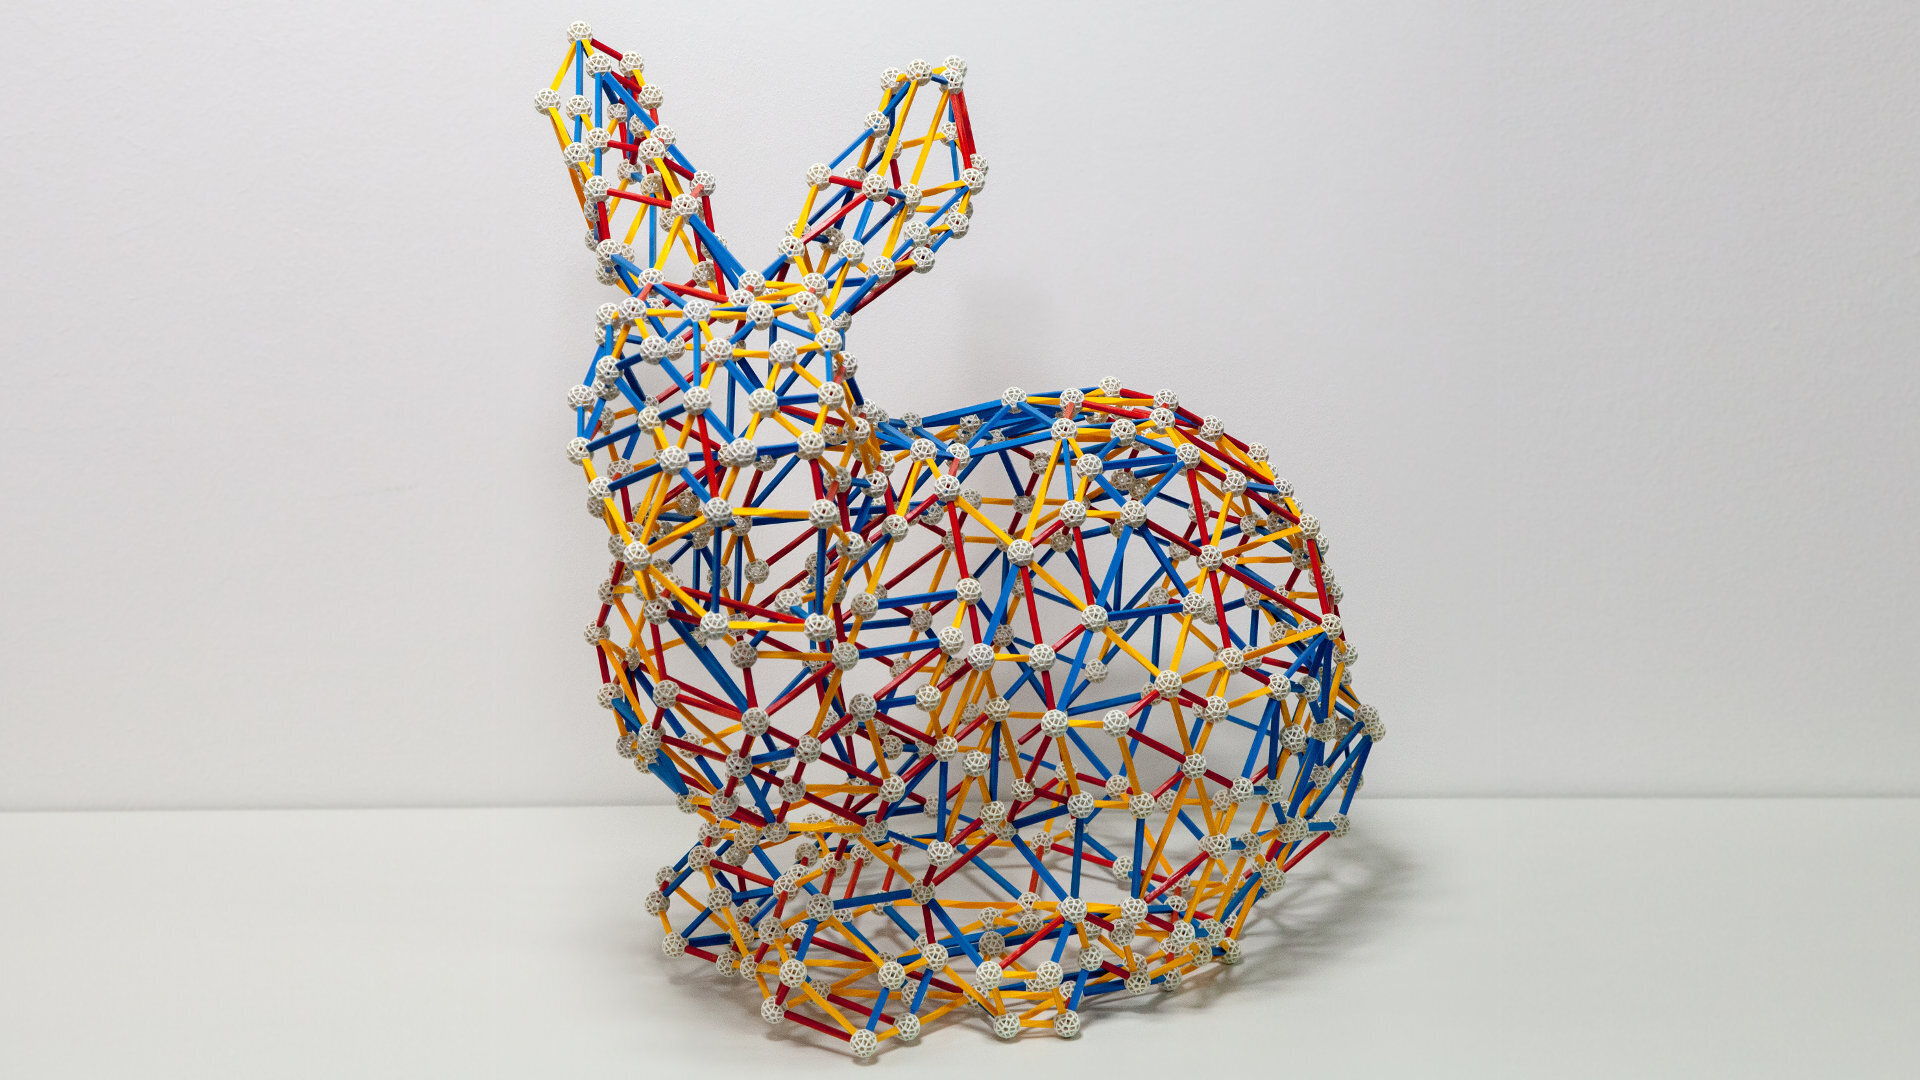 Model of a Bunny made of Vertices